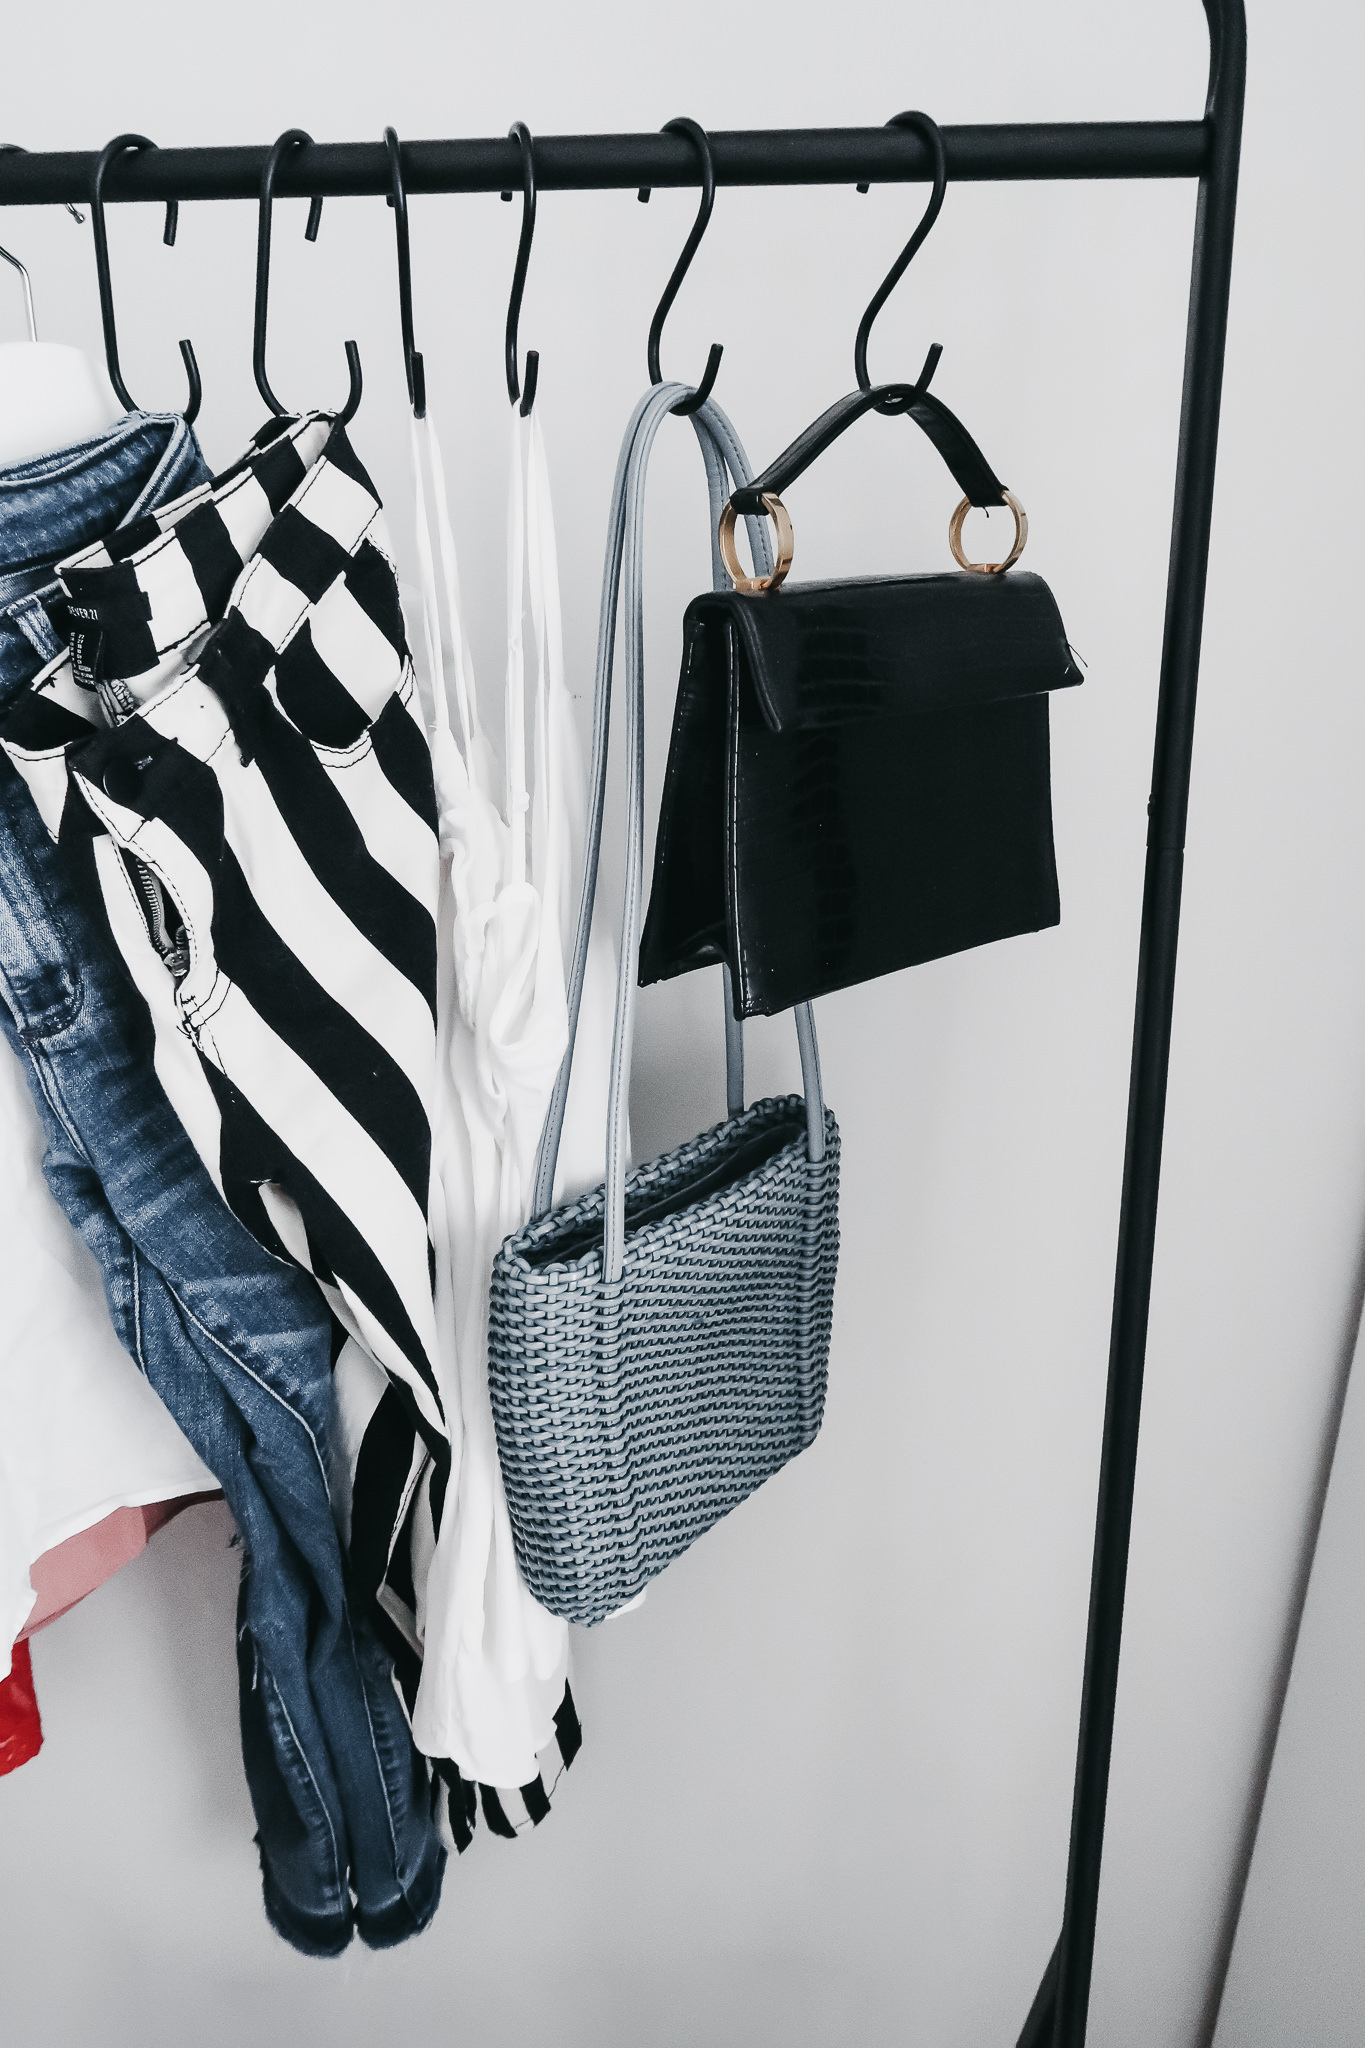 5 Reasons We Are Loving Garment Racks 6